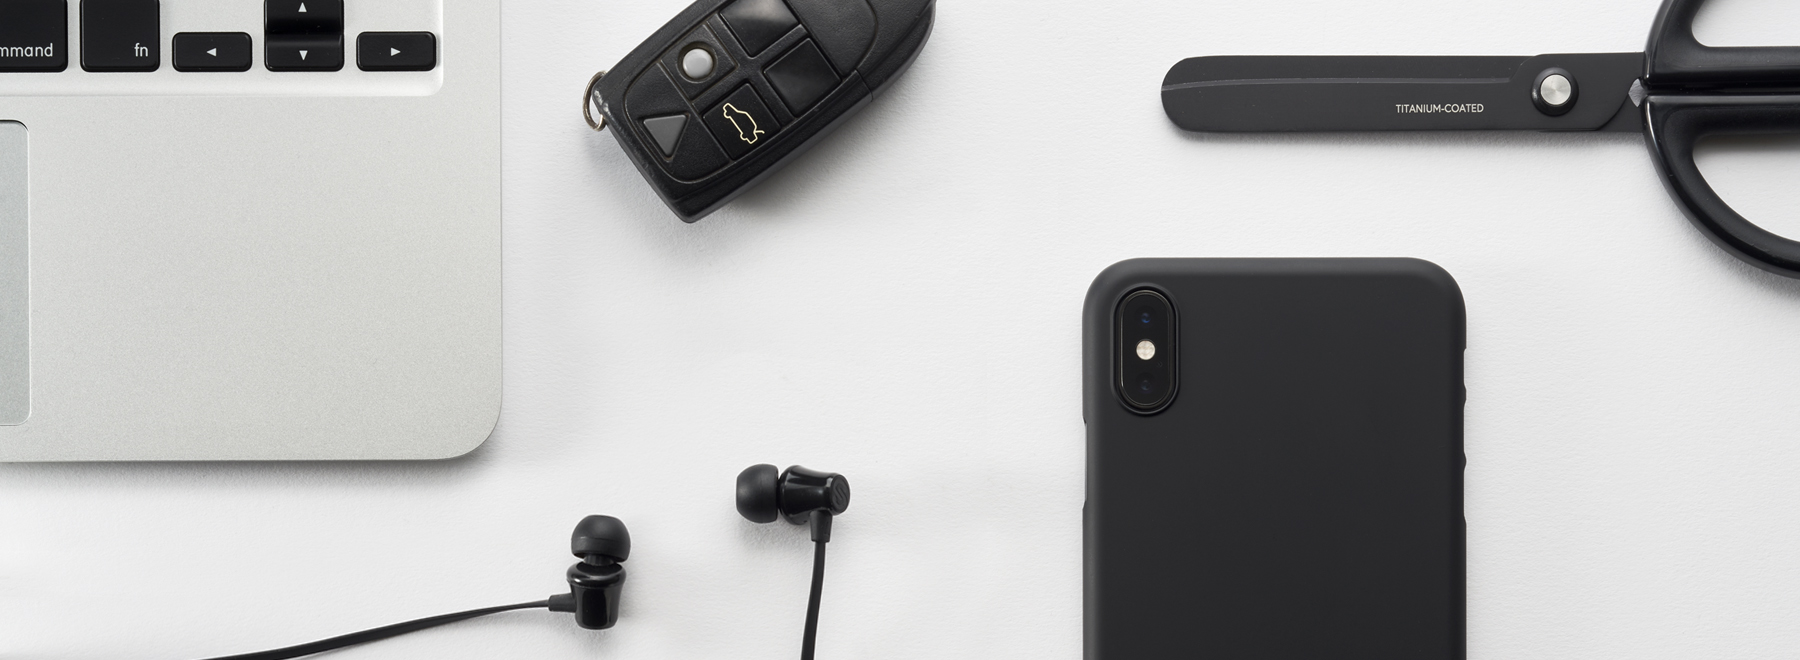 Air Jacket for iPhone XS ライフスタイルフォト